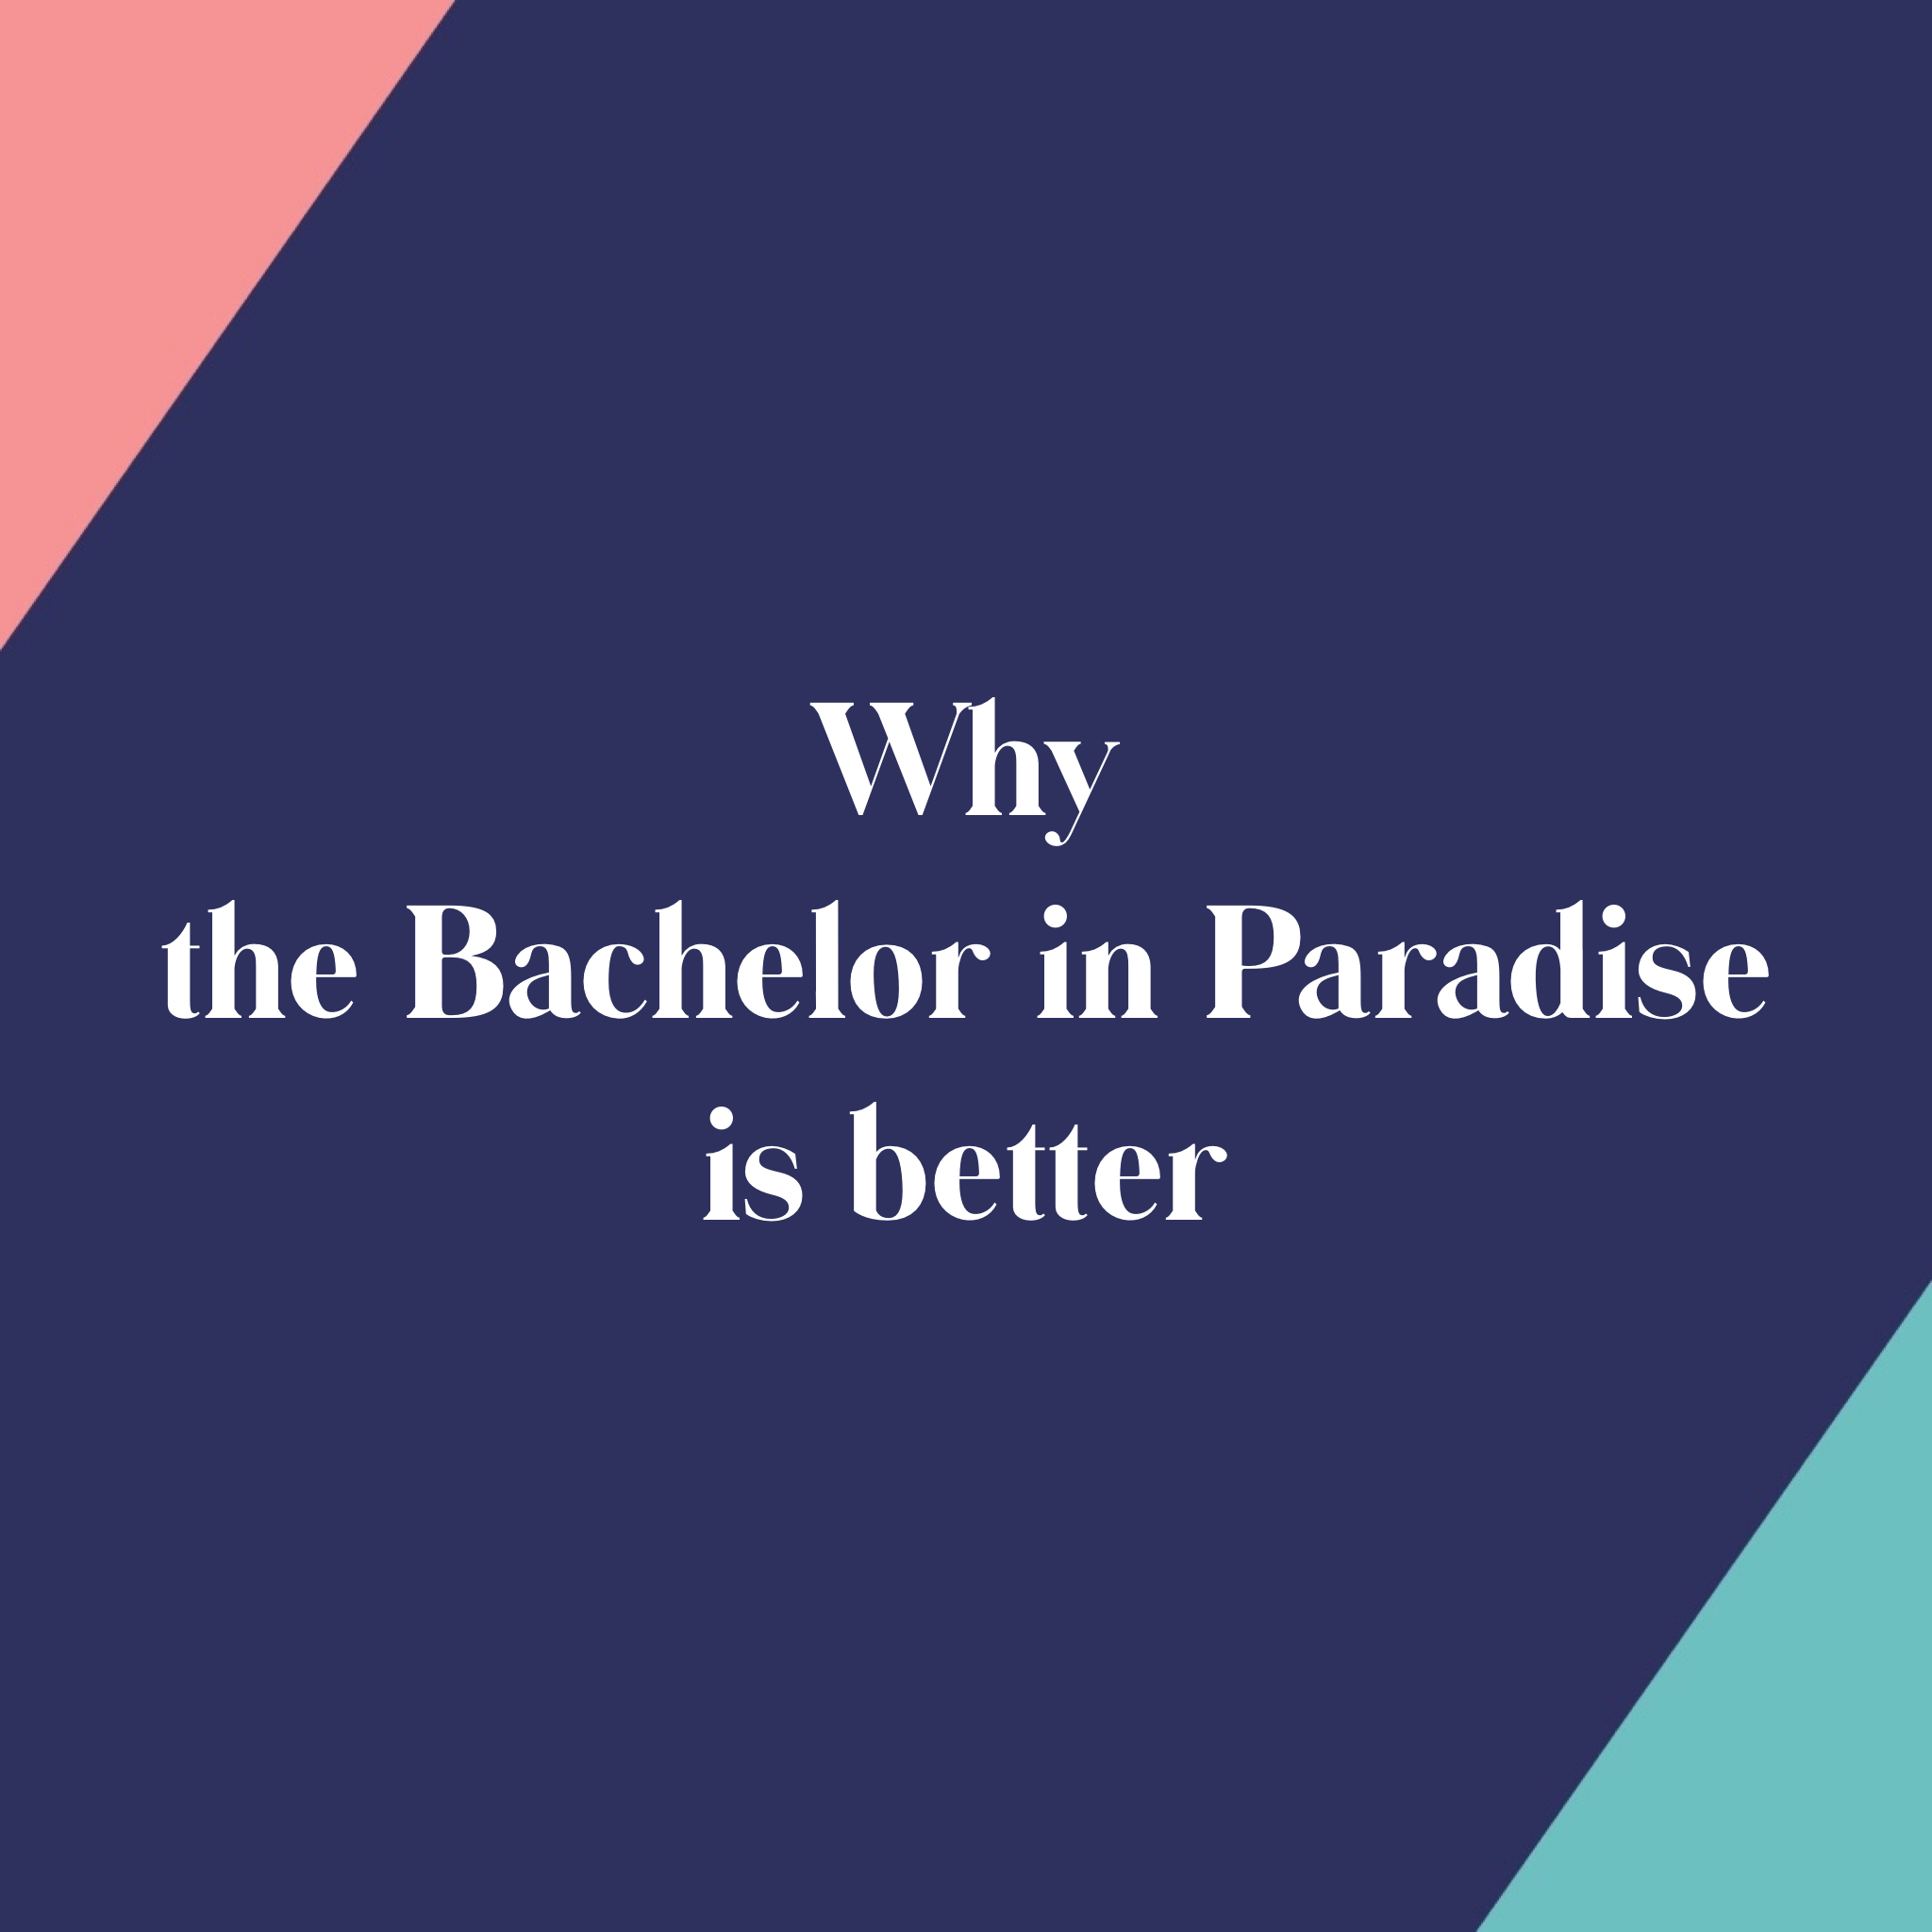 The Bachelor vs the Bachelor in Paradise